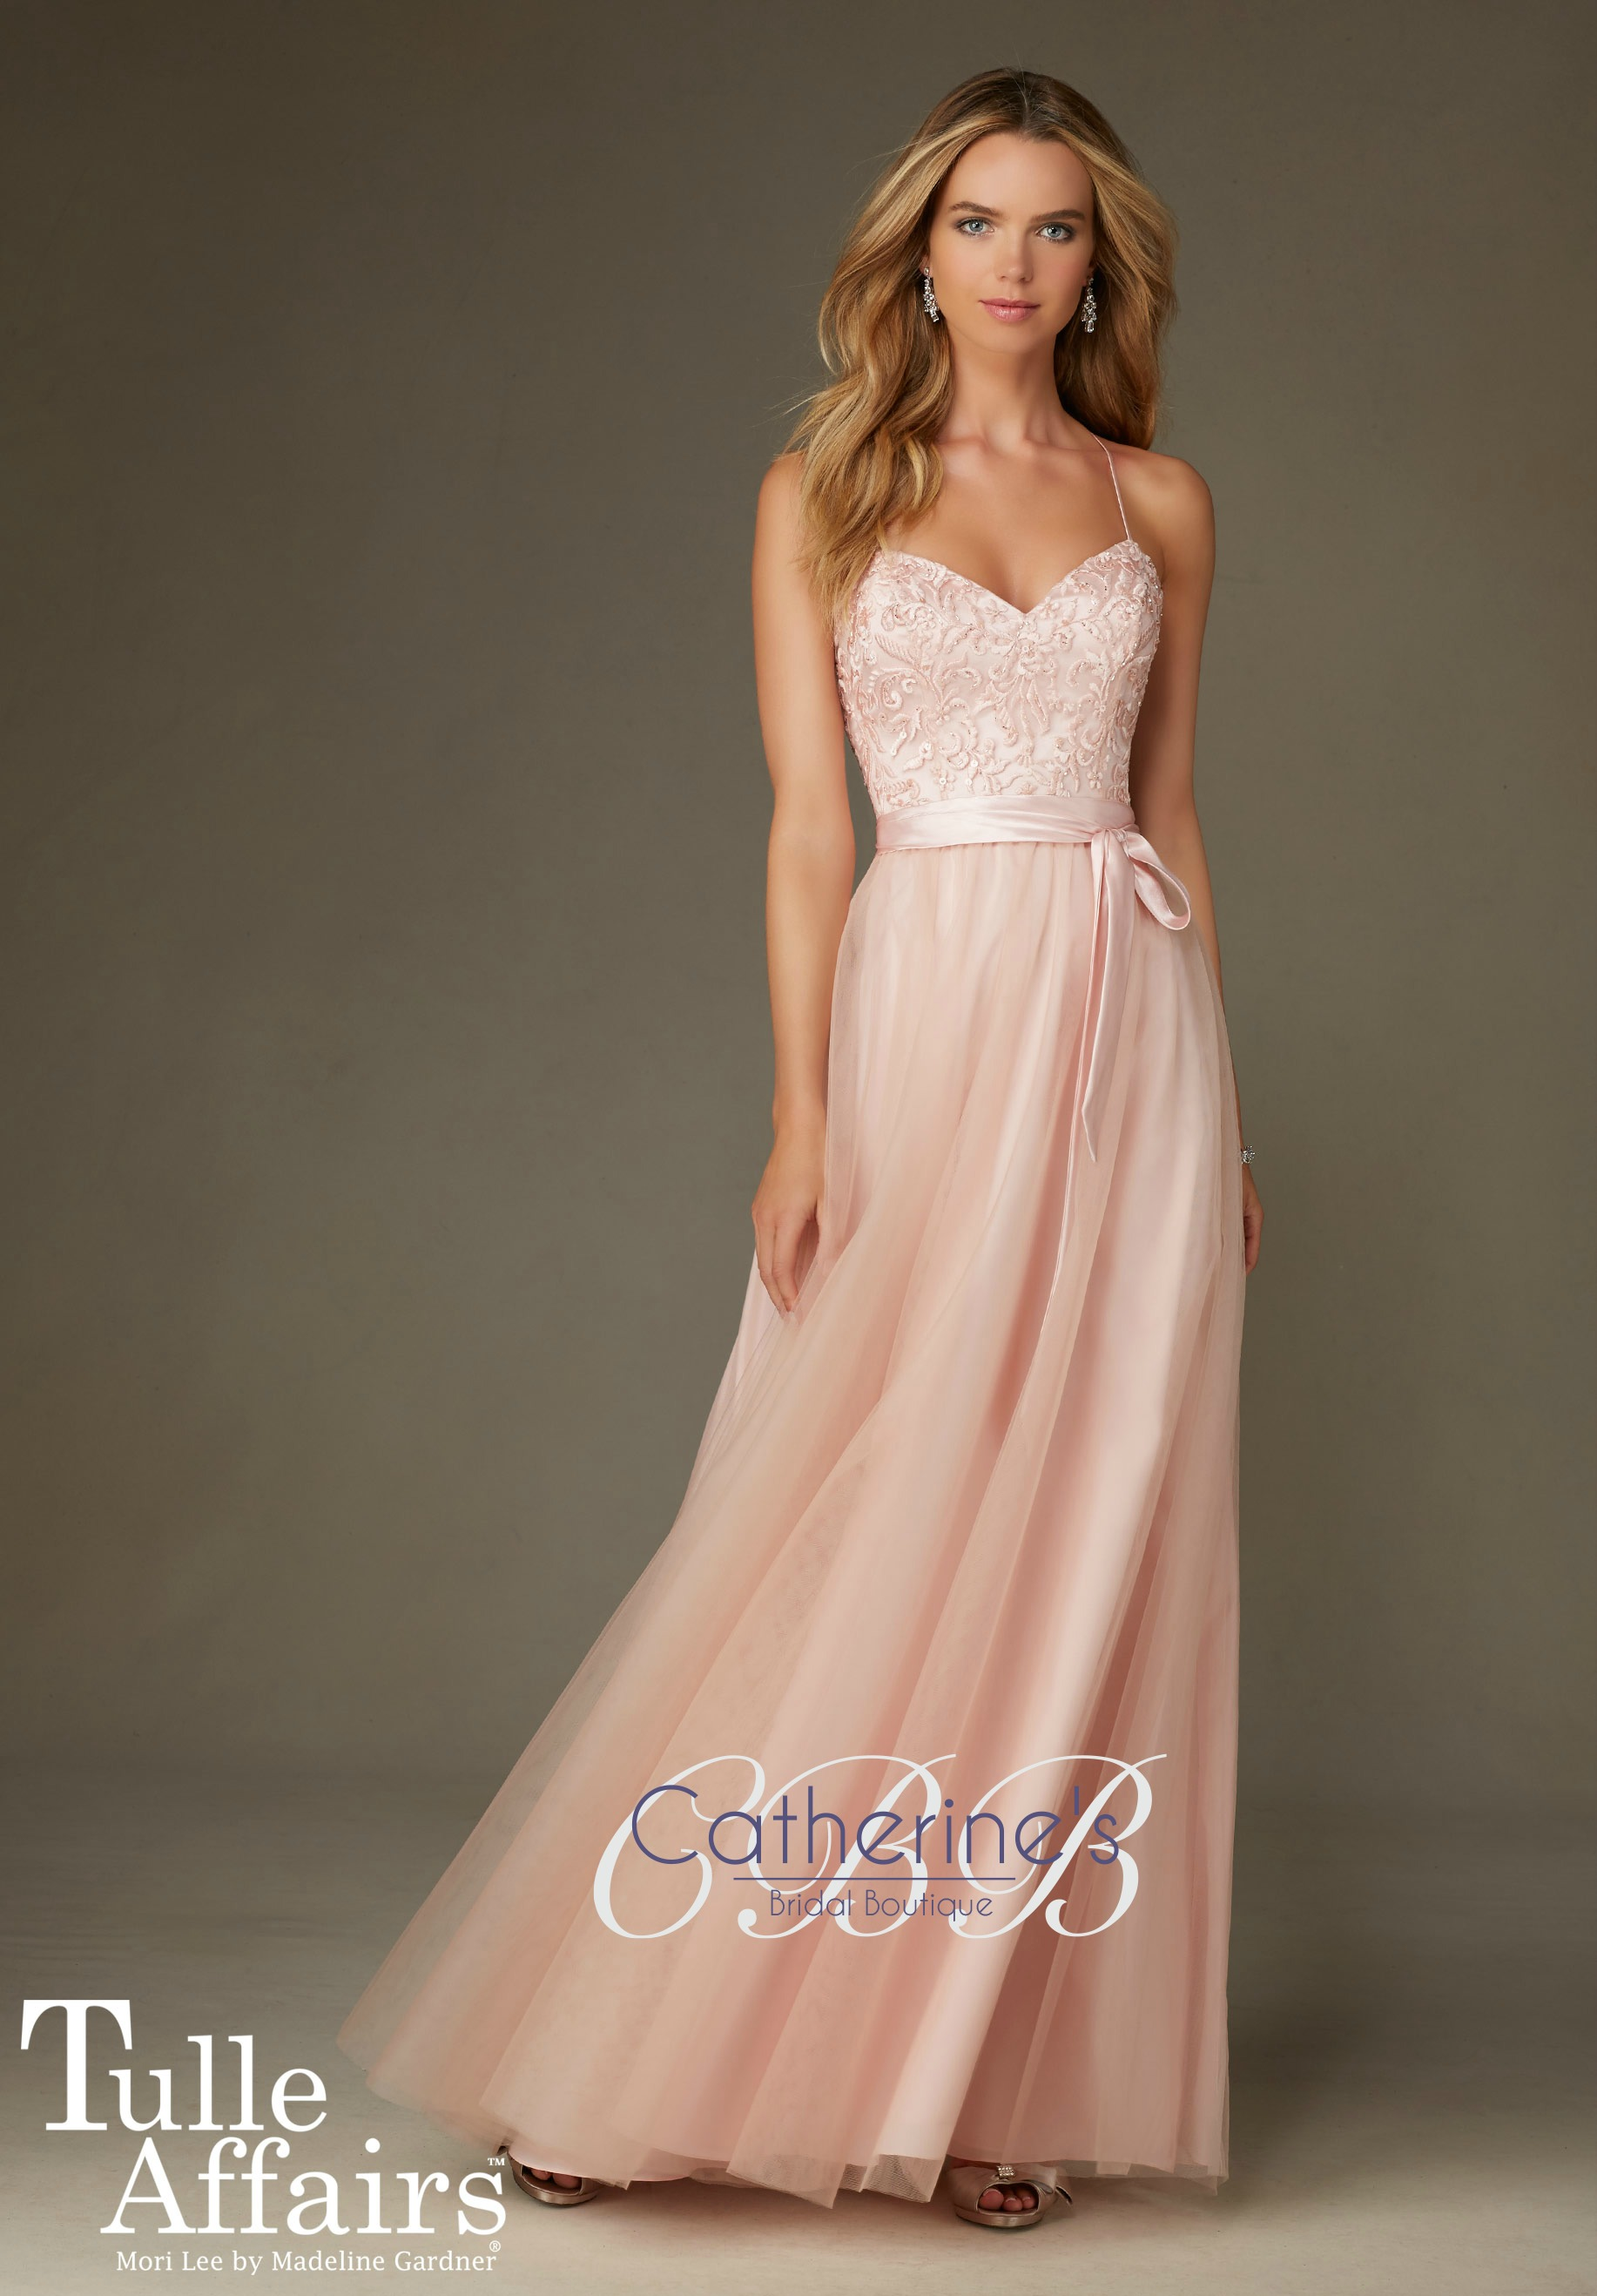 Find the perfect bridesmaids dress to customize the look of your work with the bridal shop so that you understand standard delivery times and what it may cost if they have to pay for rush delivery ombrellifo Image collections